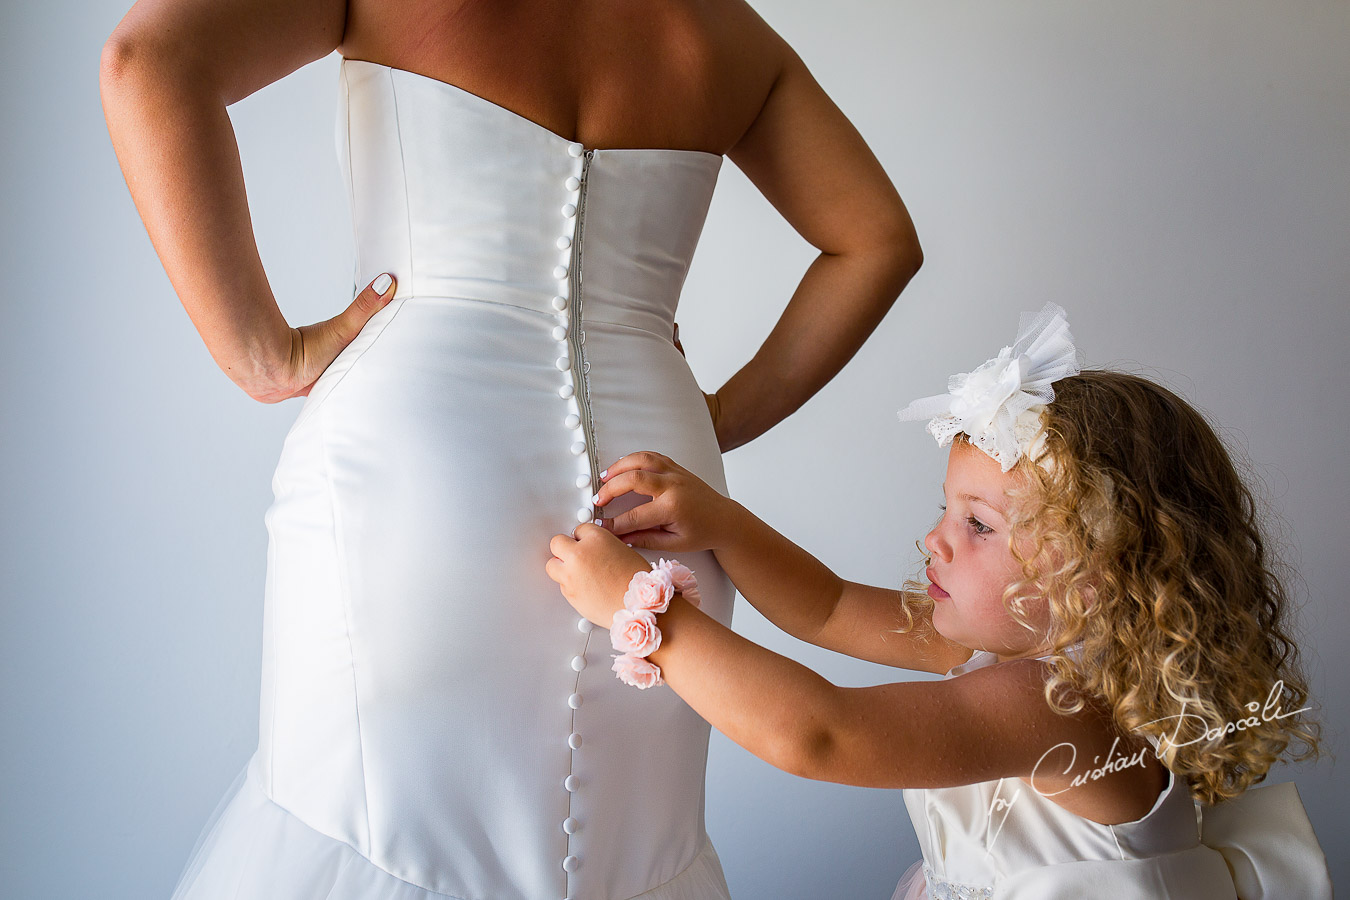 Little Eva helping her mother to tie up the wedding dress.